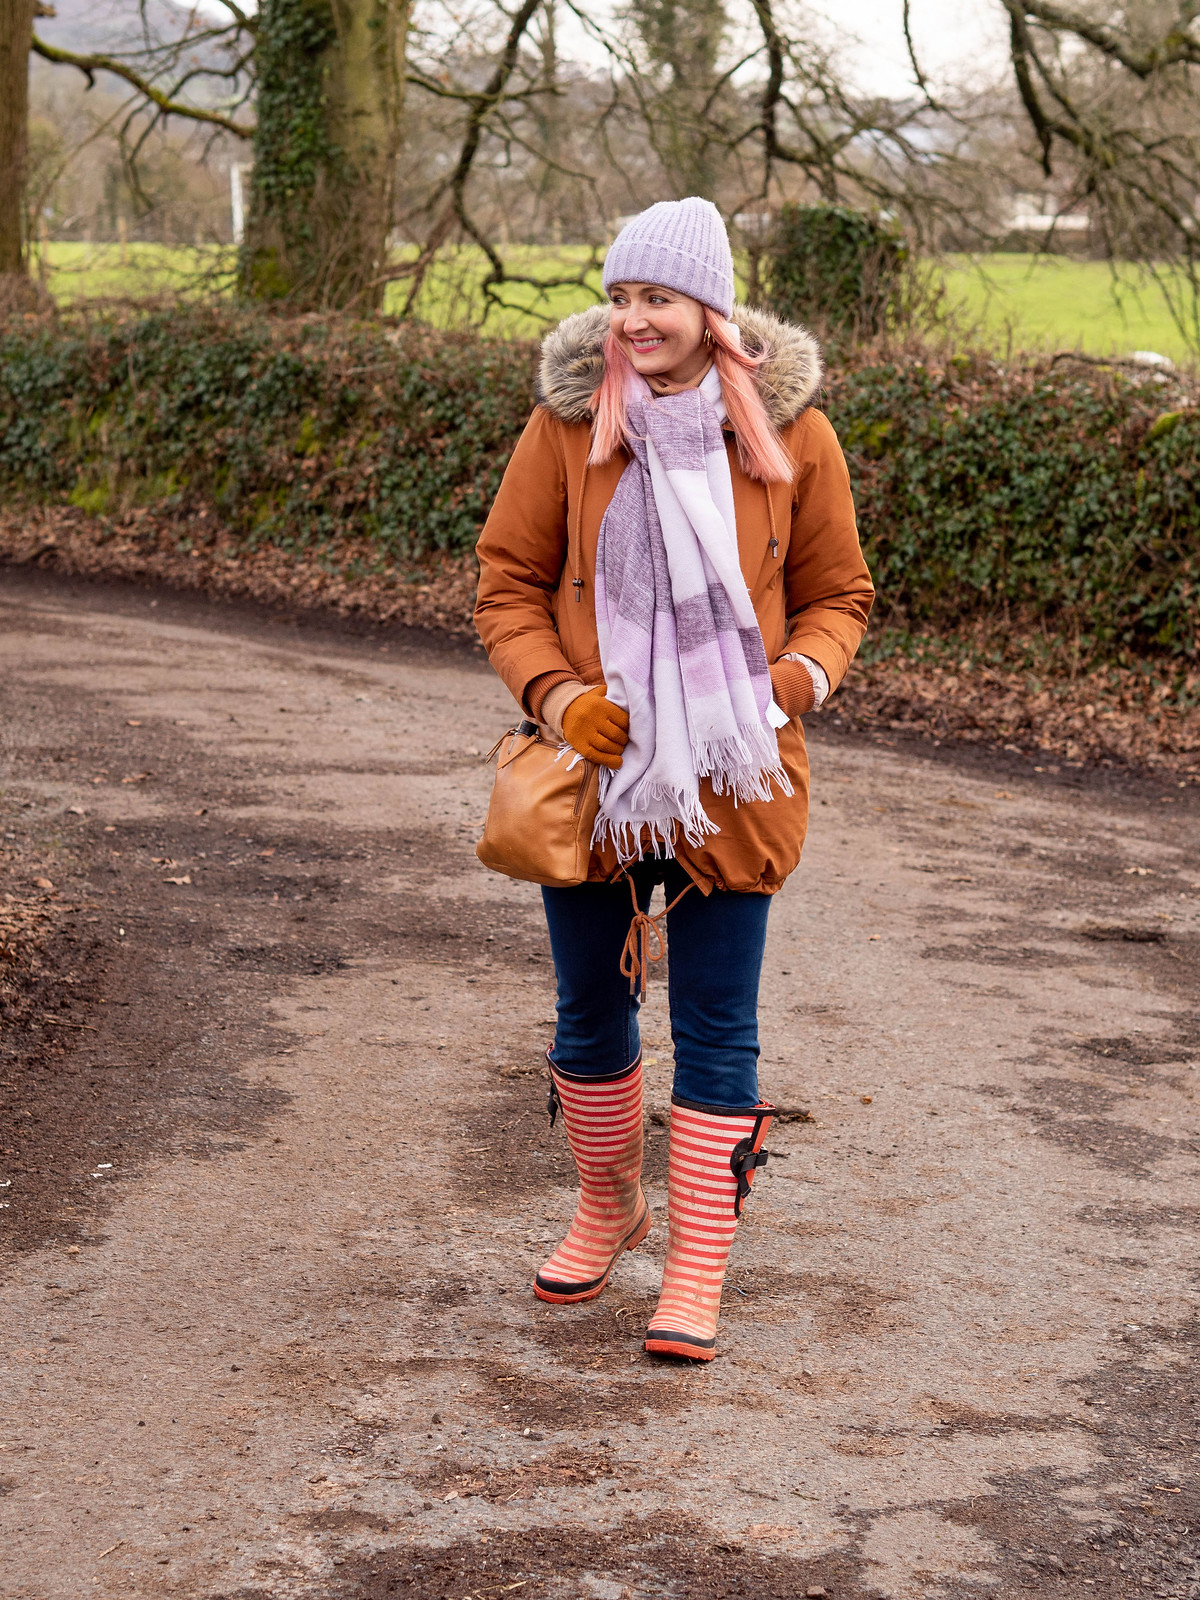 The Importance of Bright Accessories in Cold Weather | Catherine Summers of Not Dressed As Lamb, Over 40 Fashion, wearing burnt orange parka, lilac beanie and scarf and blue jeans tucked into red striped wellies